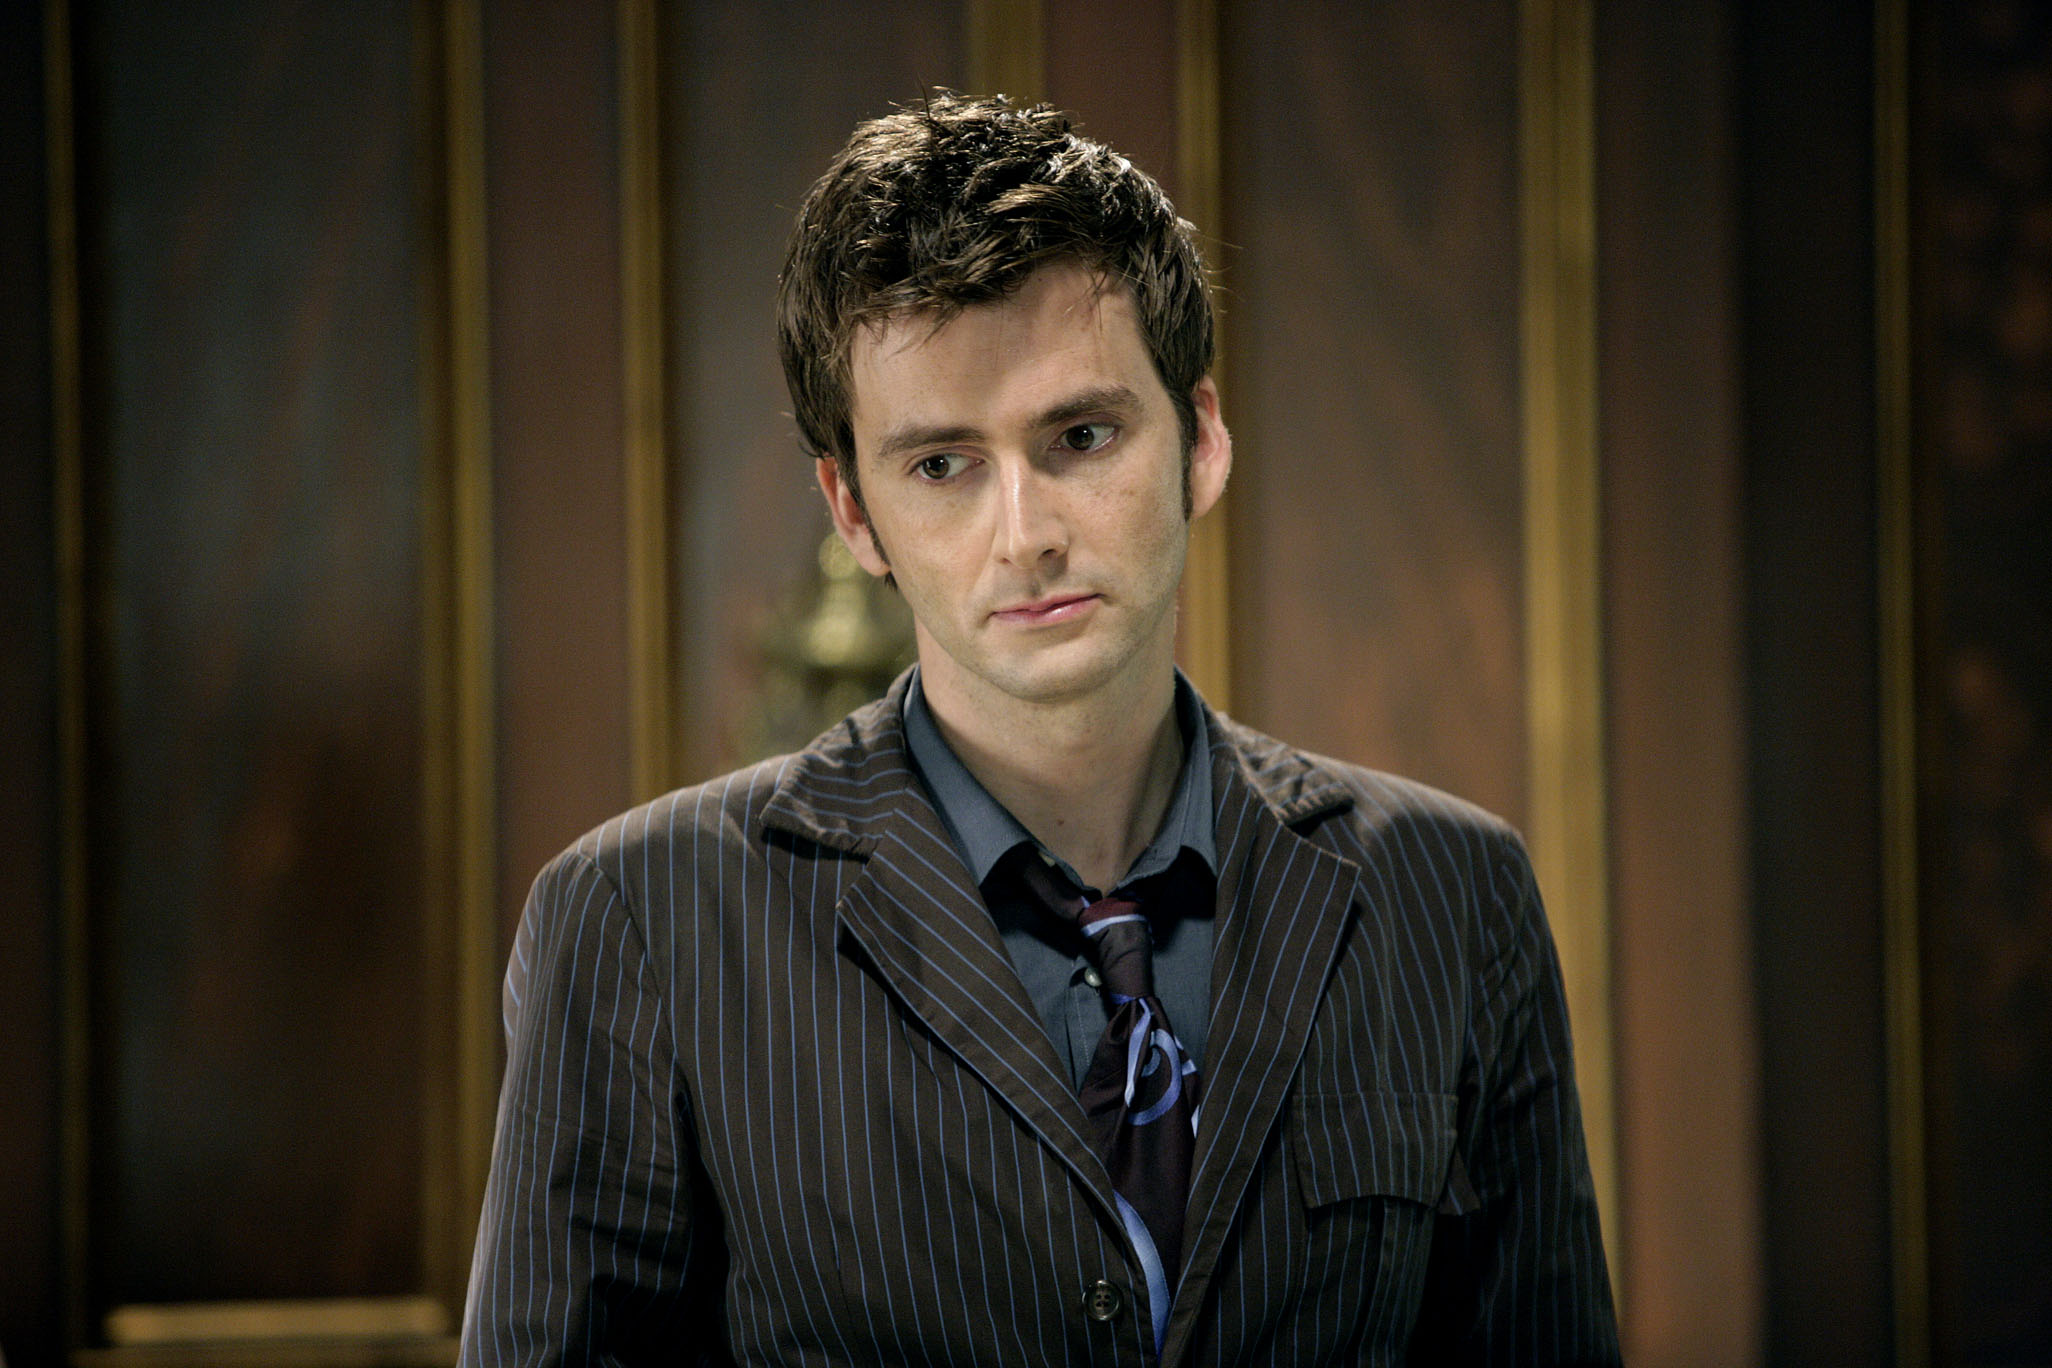 David Tennant Hd Wallpapers 7wallpapers Net